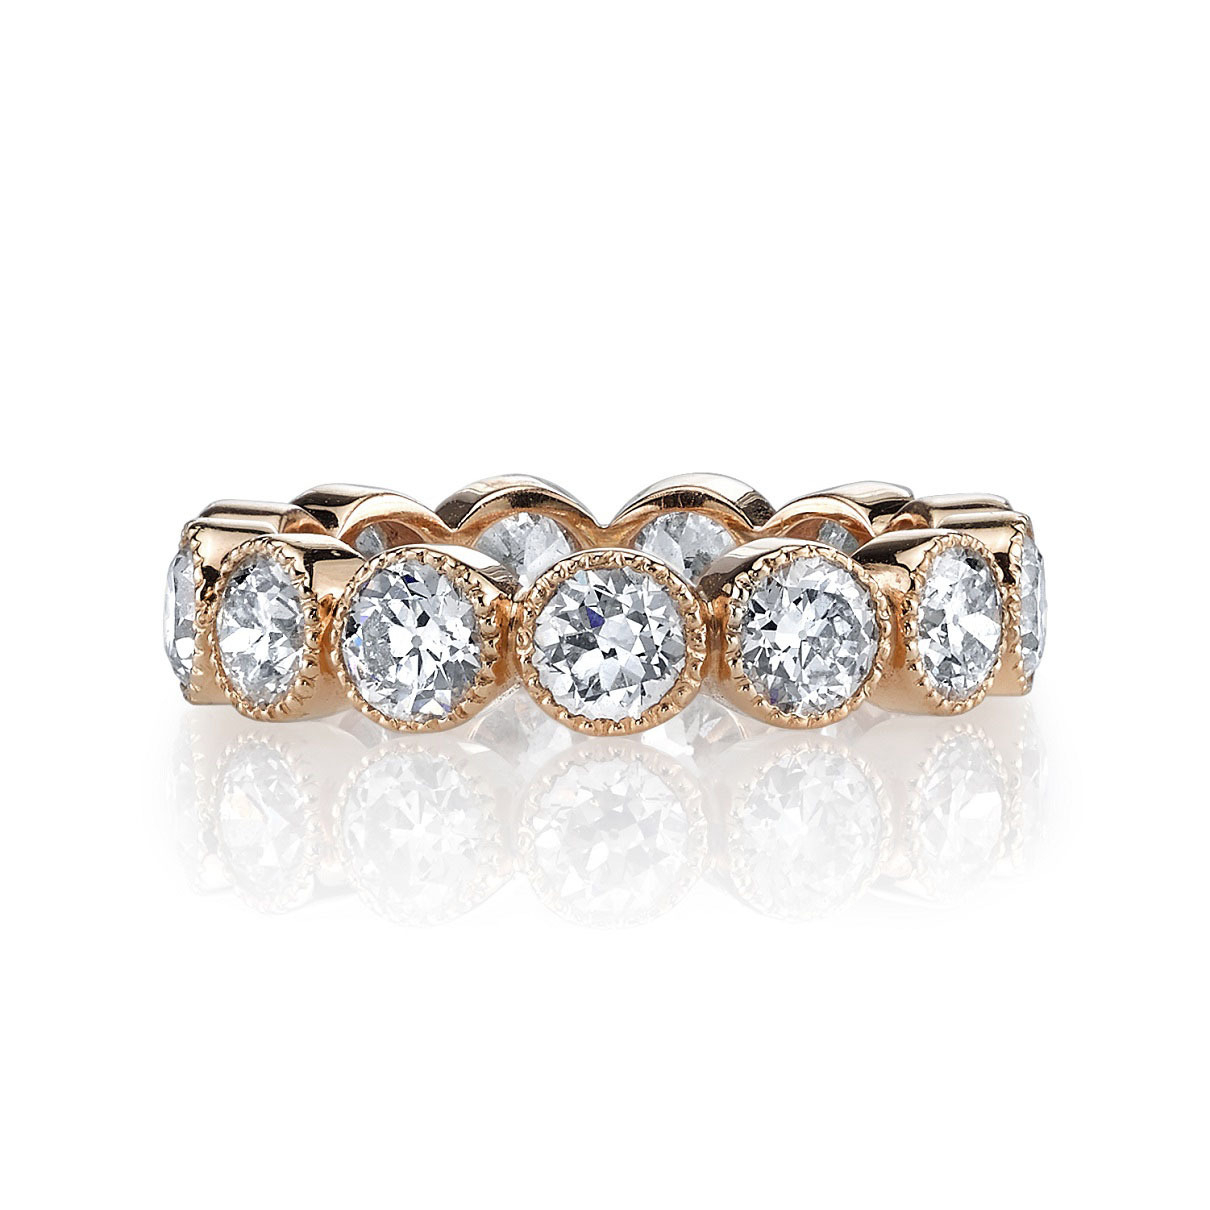 """Single Stone Large Gabby Diamond Eternity Band In Rose Gold Regarding Current Diamond Seven Stone """"x"""" Anniversary Bands In Sterling Silver And Rose Gold (View 20 of 25)"""